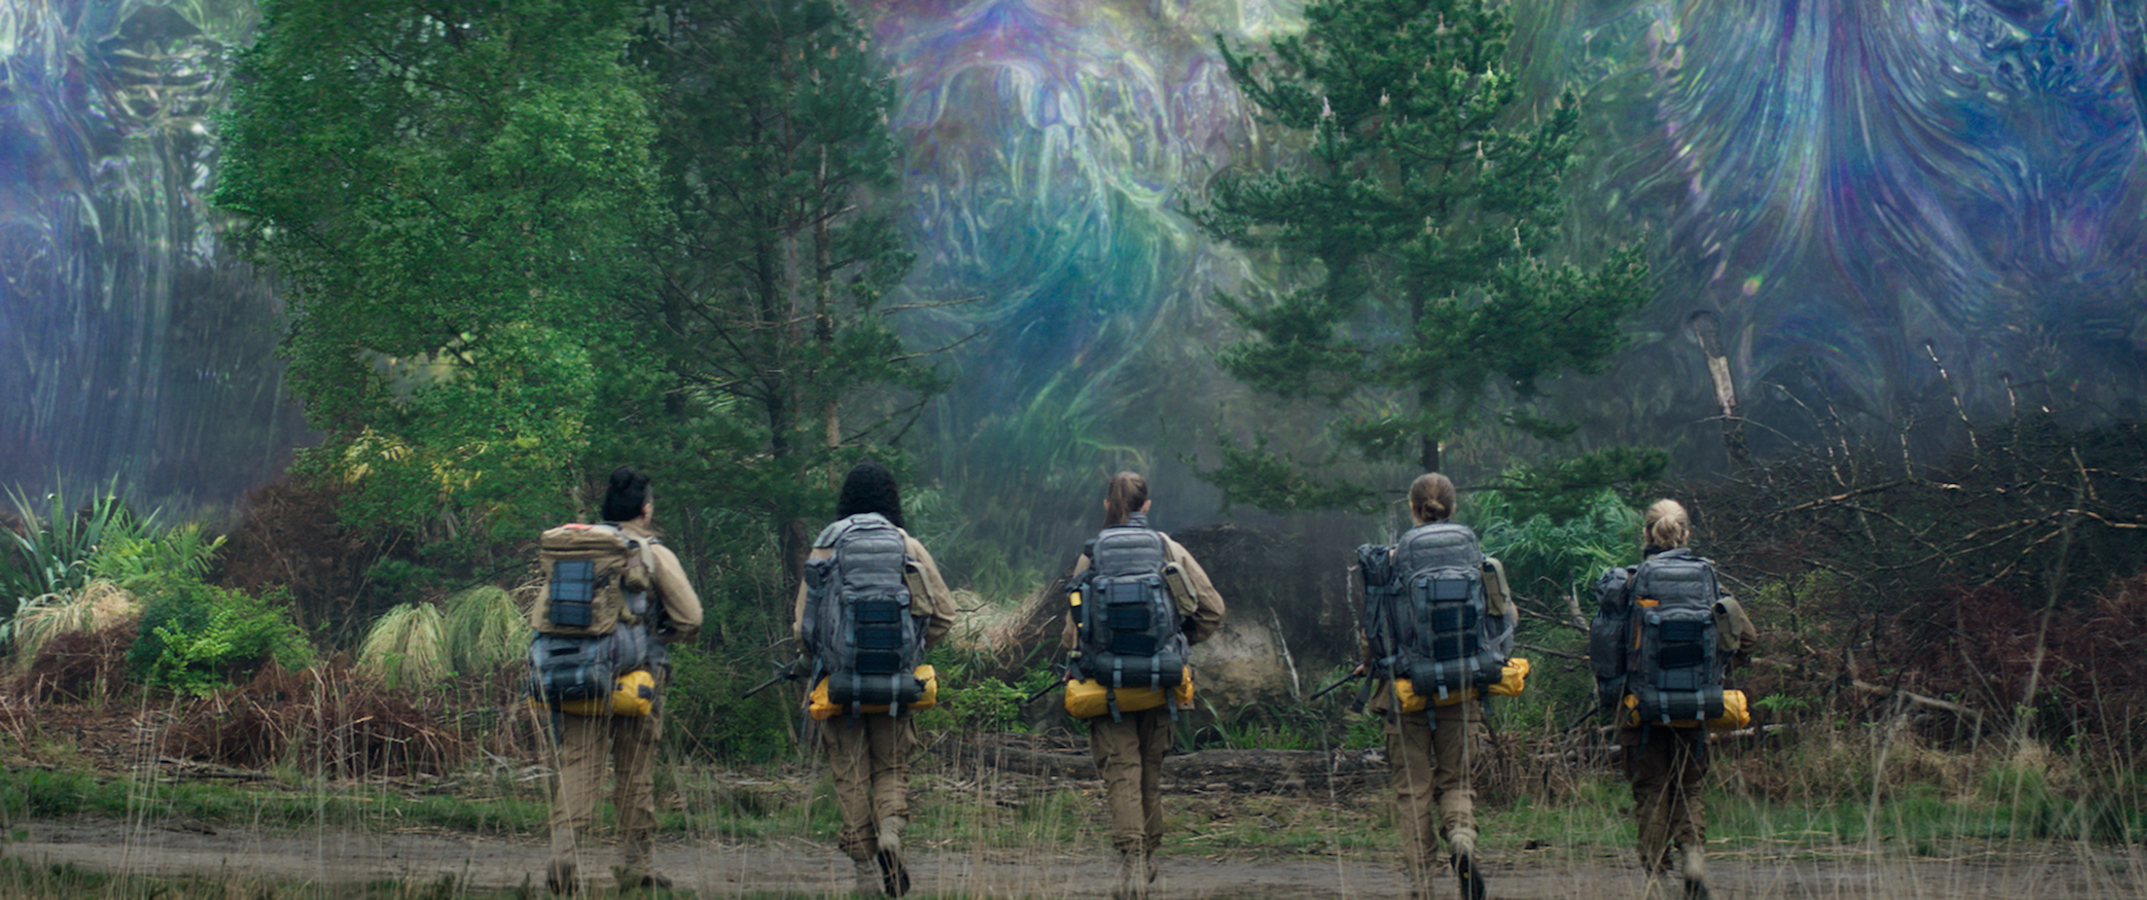 We Get More Oscar Isaac, Gina Rodriguez & Tessa Thompson in Terrifying New 'Annihilation' Trailer